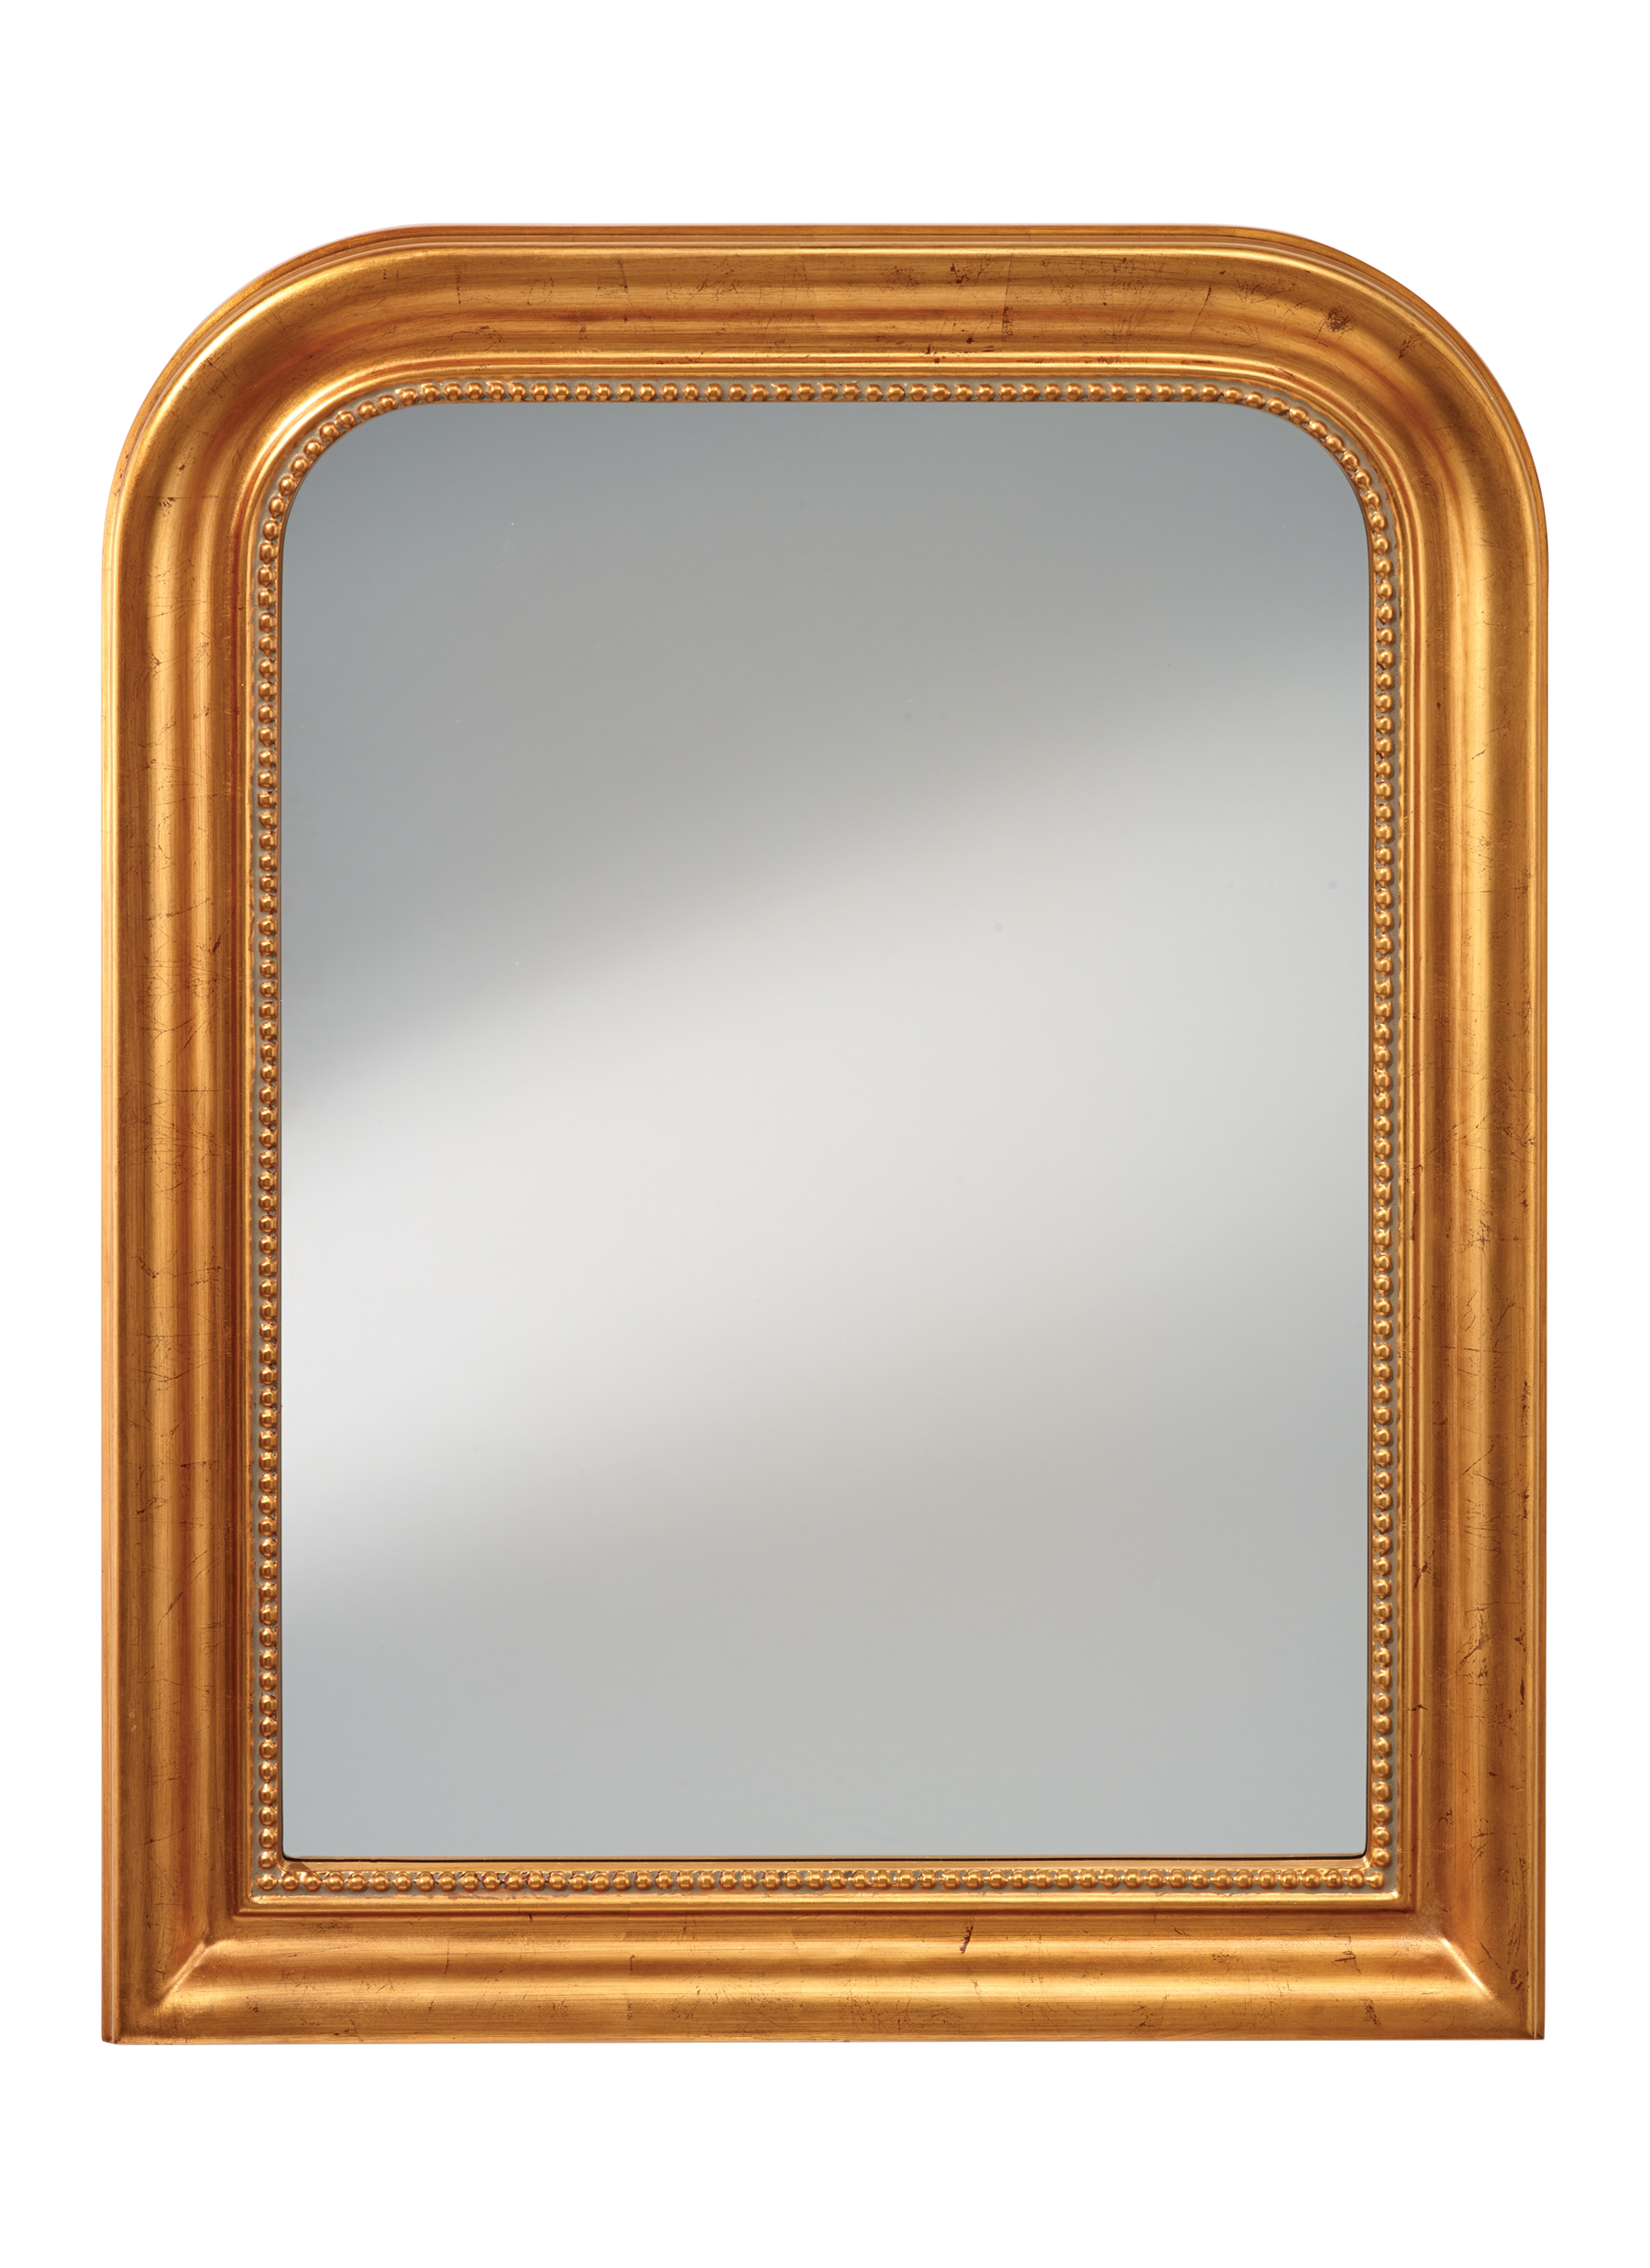 MR1213DGL,Distressed Gold Leaf - Mirror,Distressed Gold Leaf